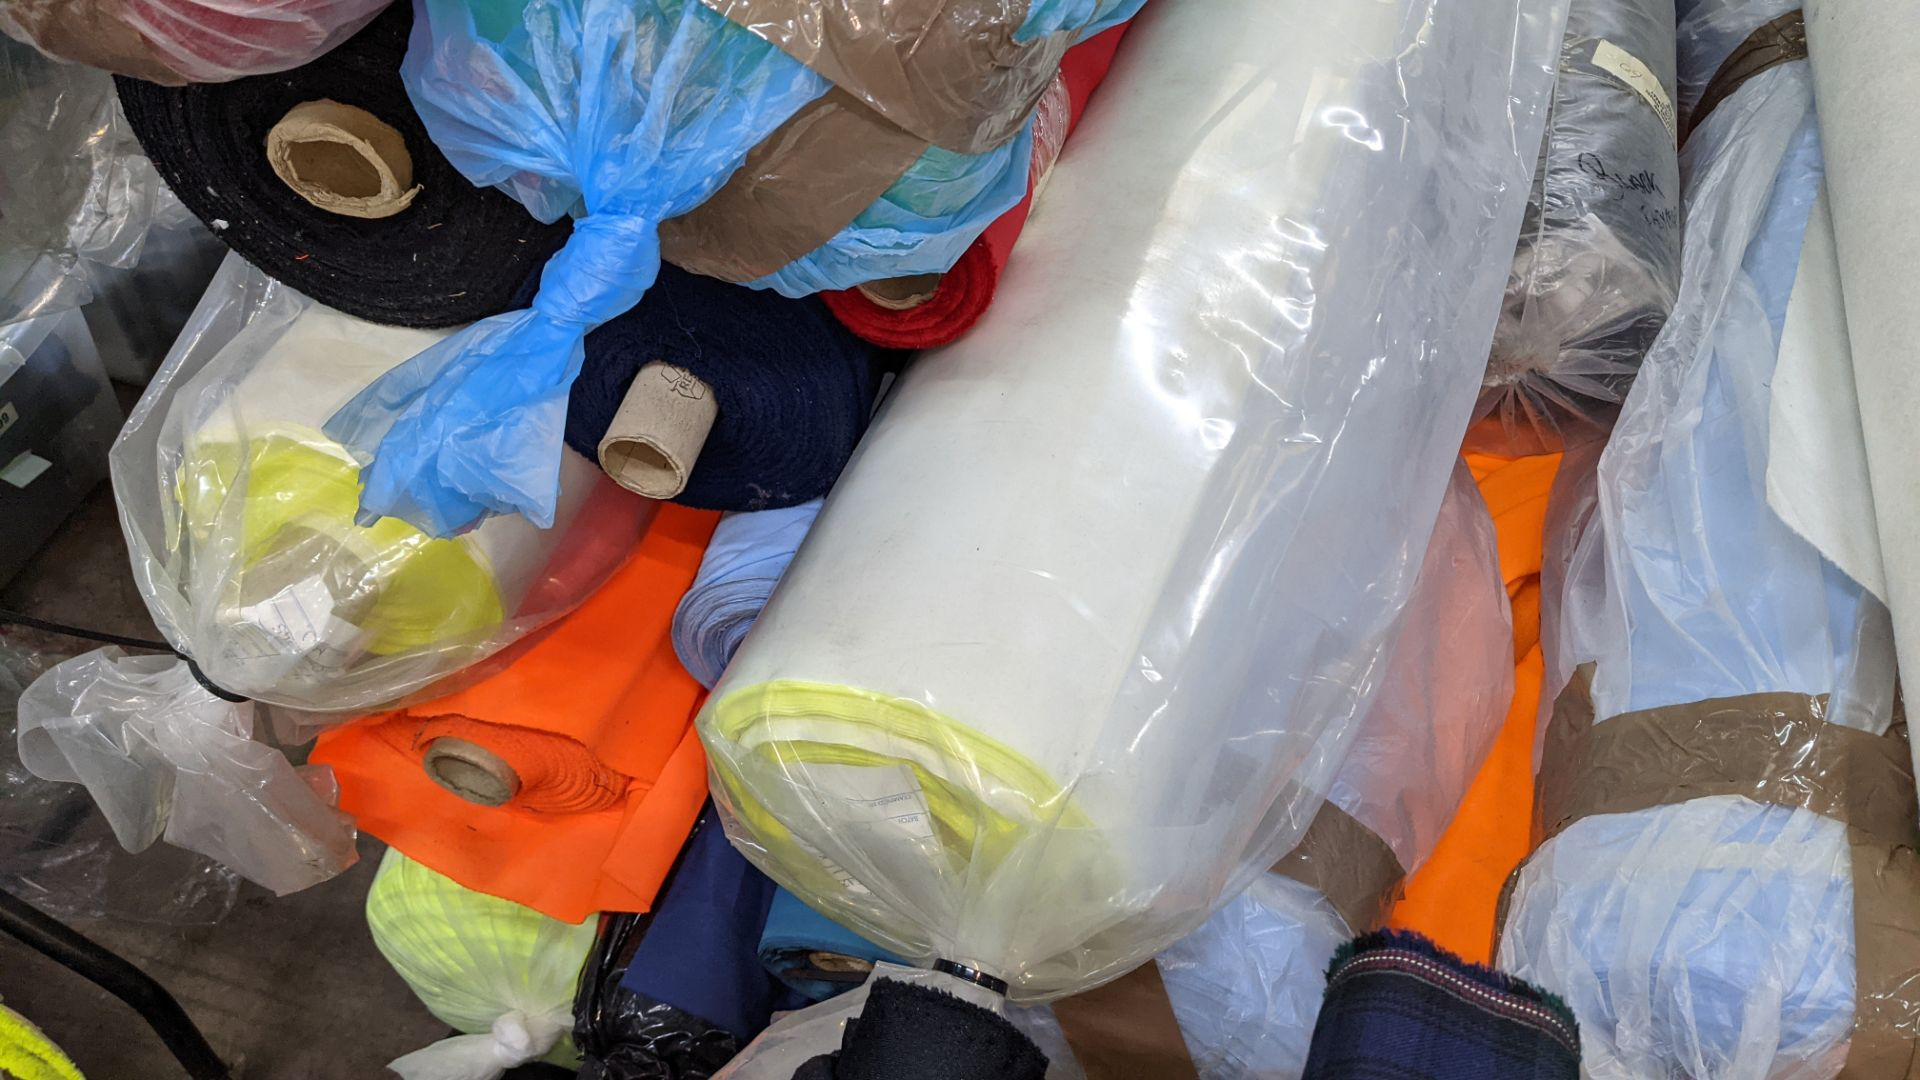 The contents of a large stillage of fabric including quantity of high visibility cloth. Please note - Image 5 of 12